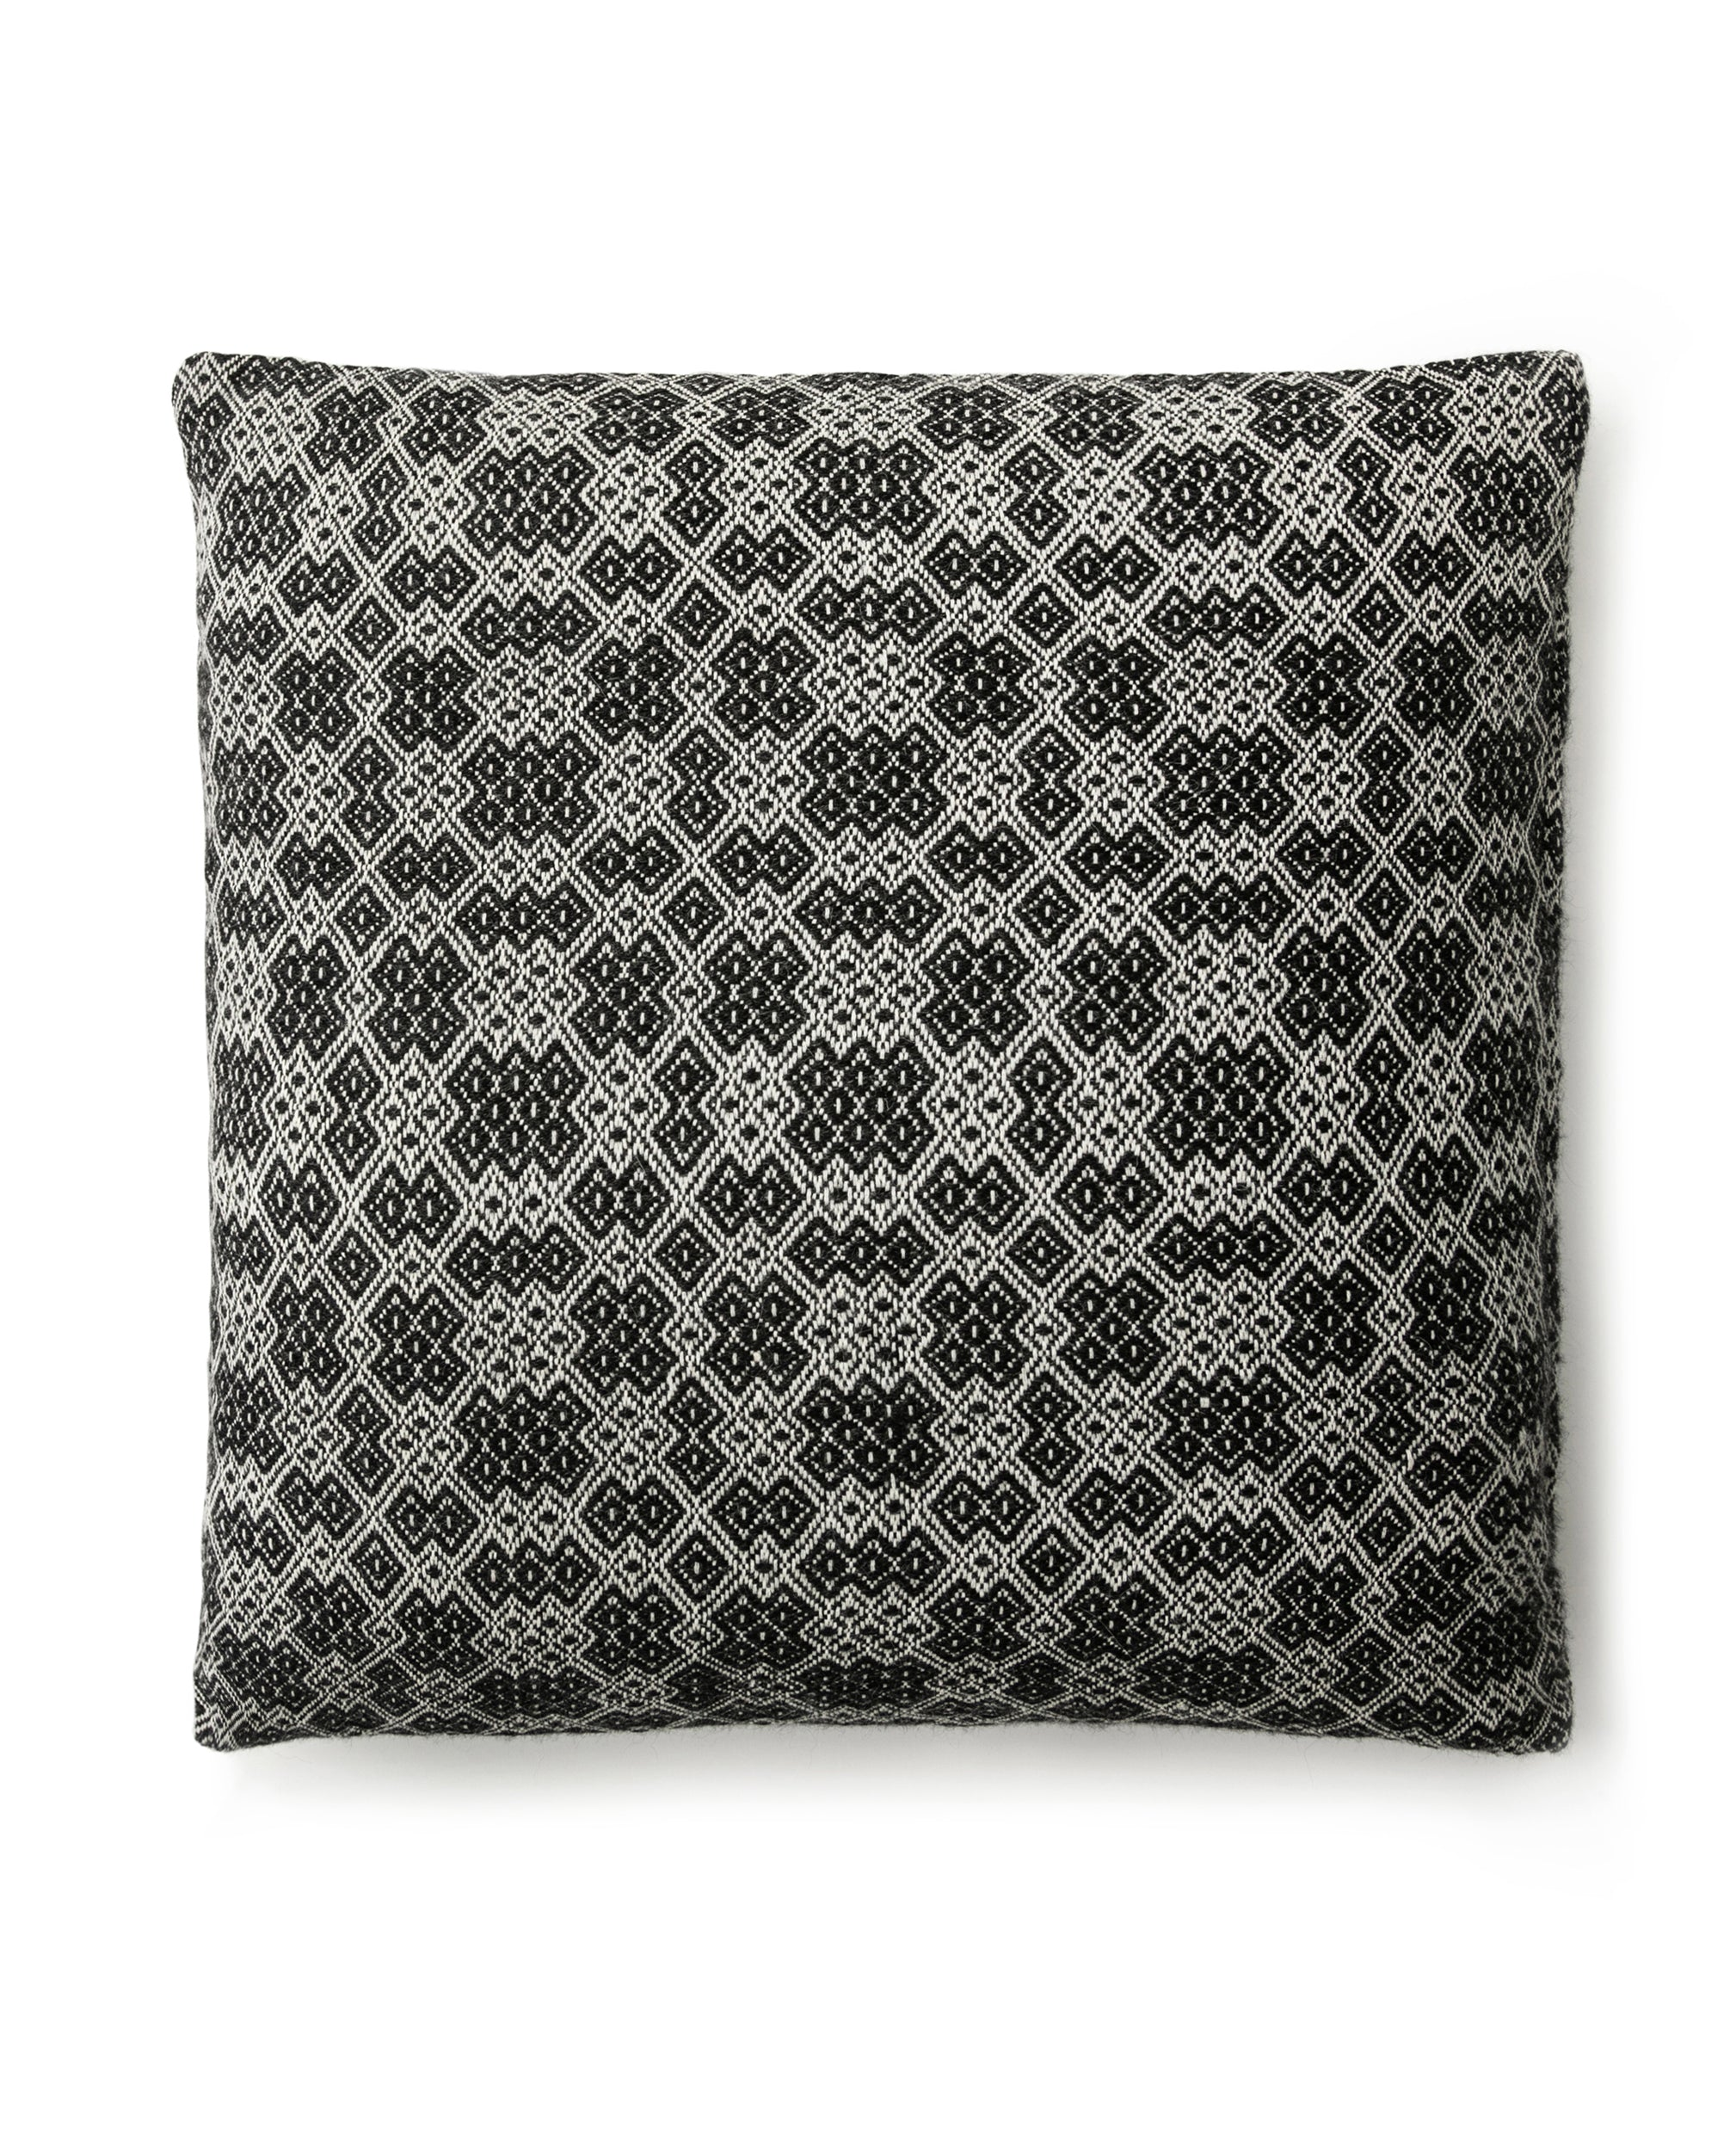 Vaeven Aro overshot cushion pillow